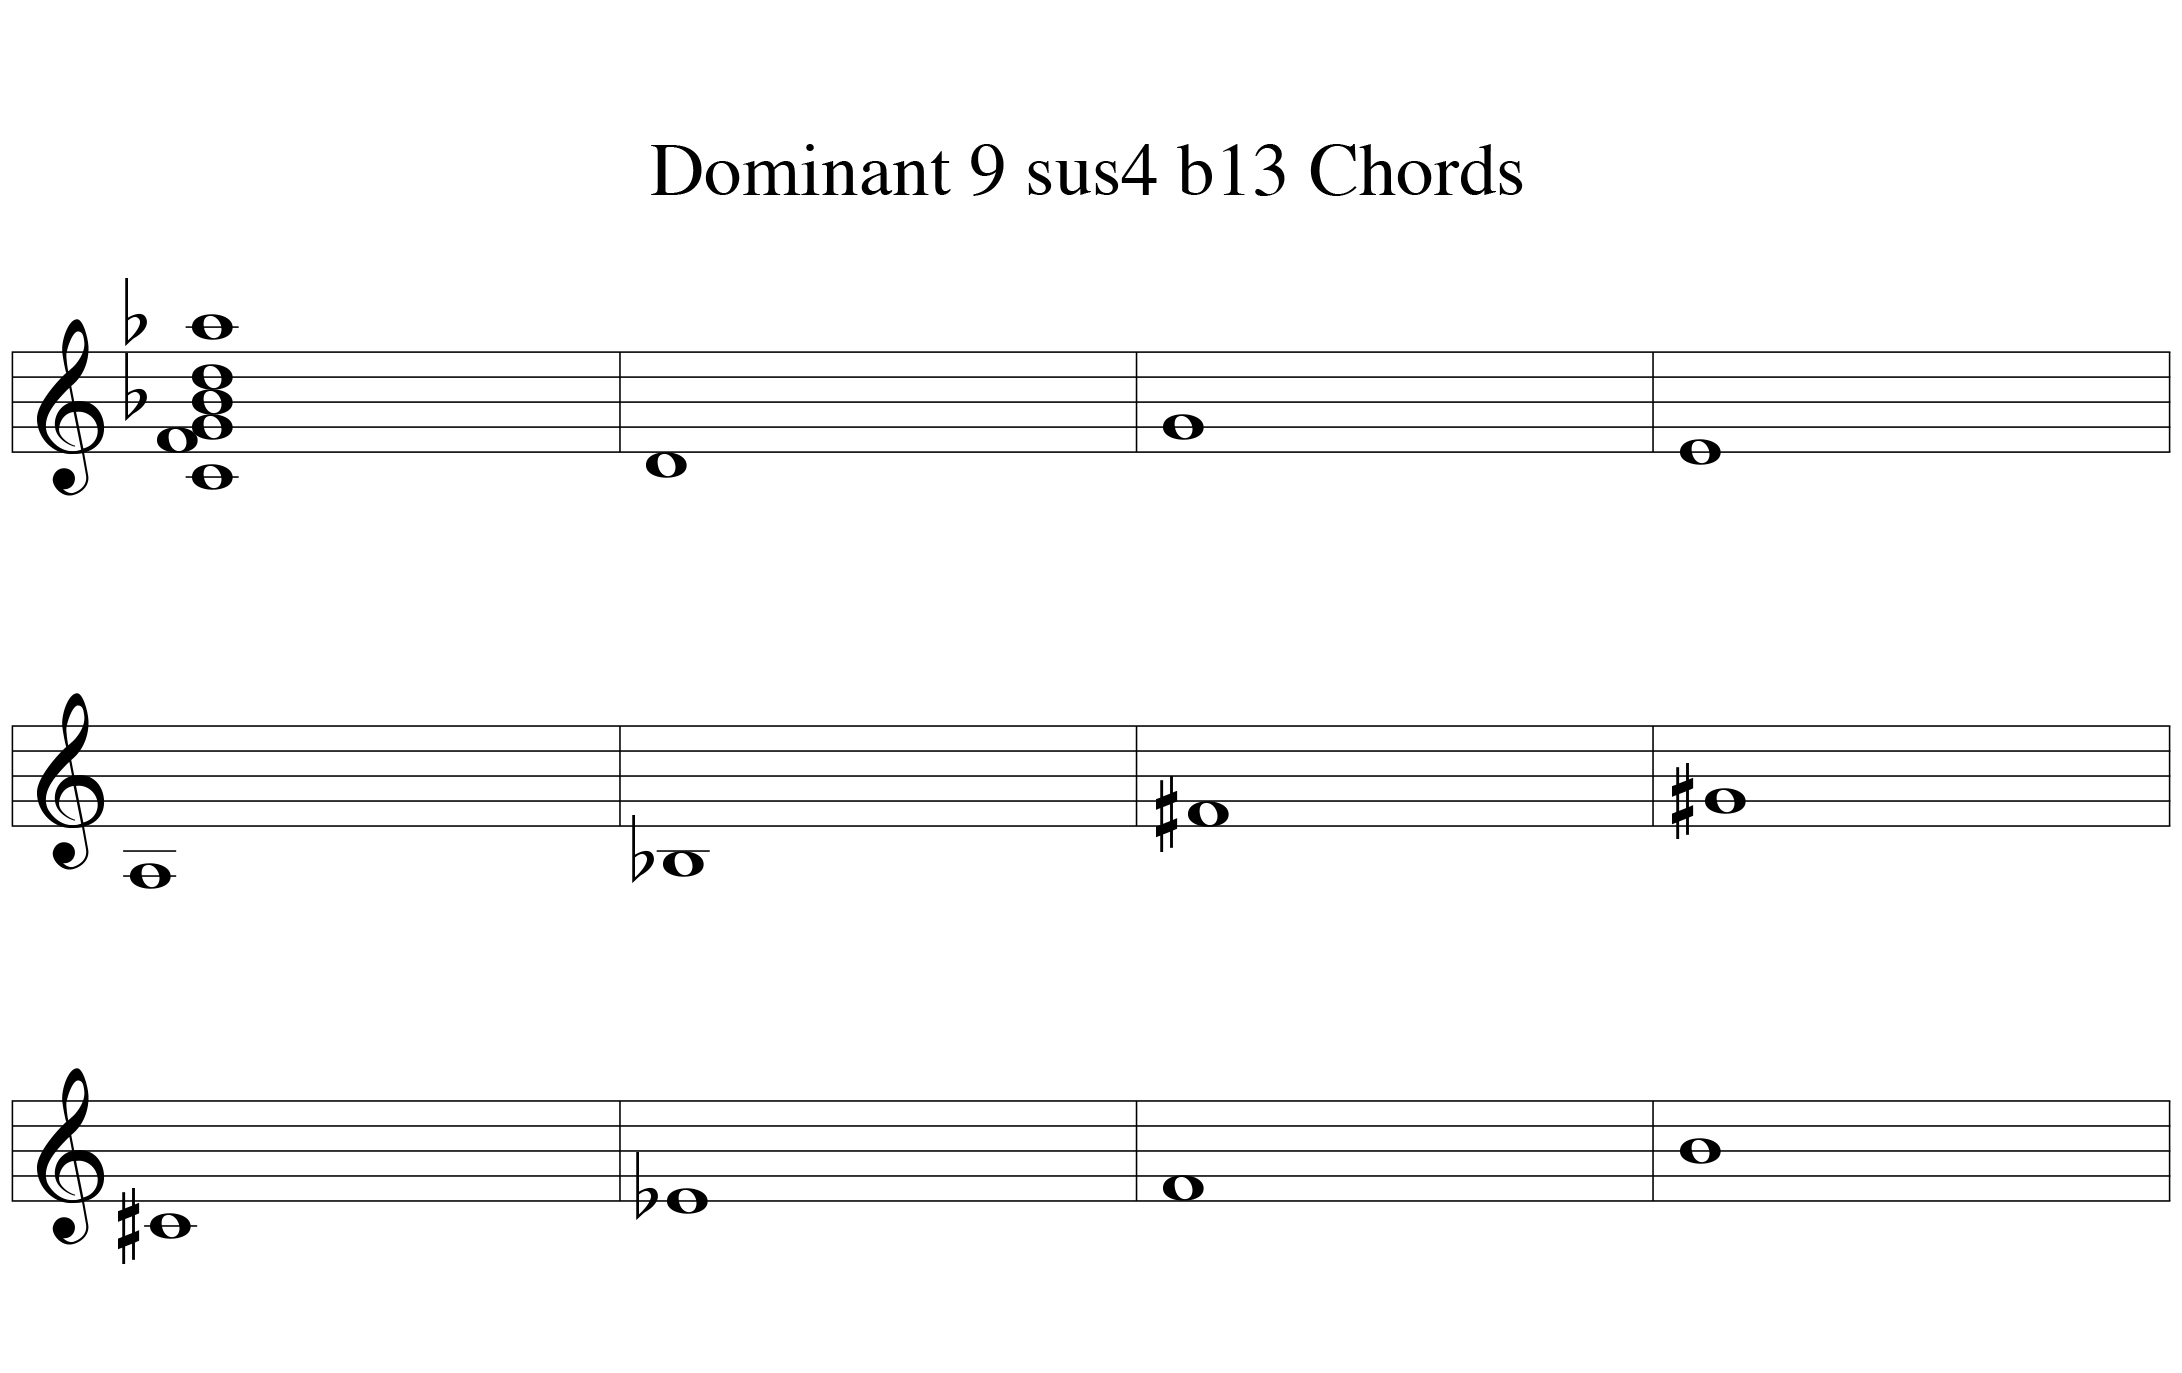 Music-Theory-Workbook-for-all-instruments-by-bruce-arnold-for-muse-eek.com-basic-interval-exercise-Crop7sus4b13